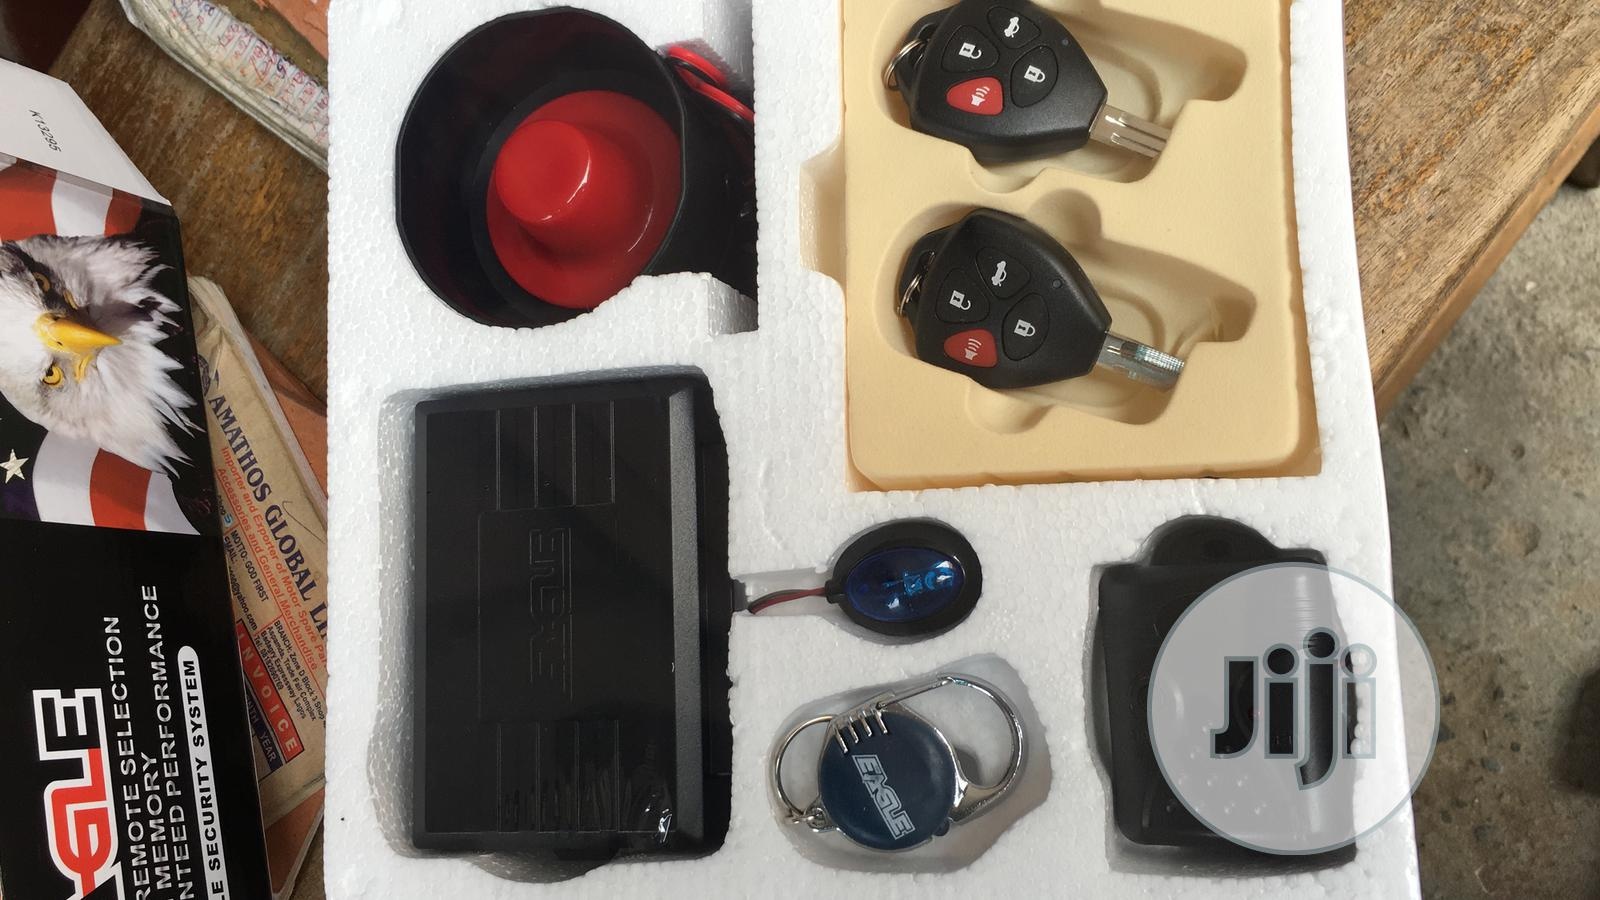 Car Security System And Alarm For Toyota Camry Spider